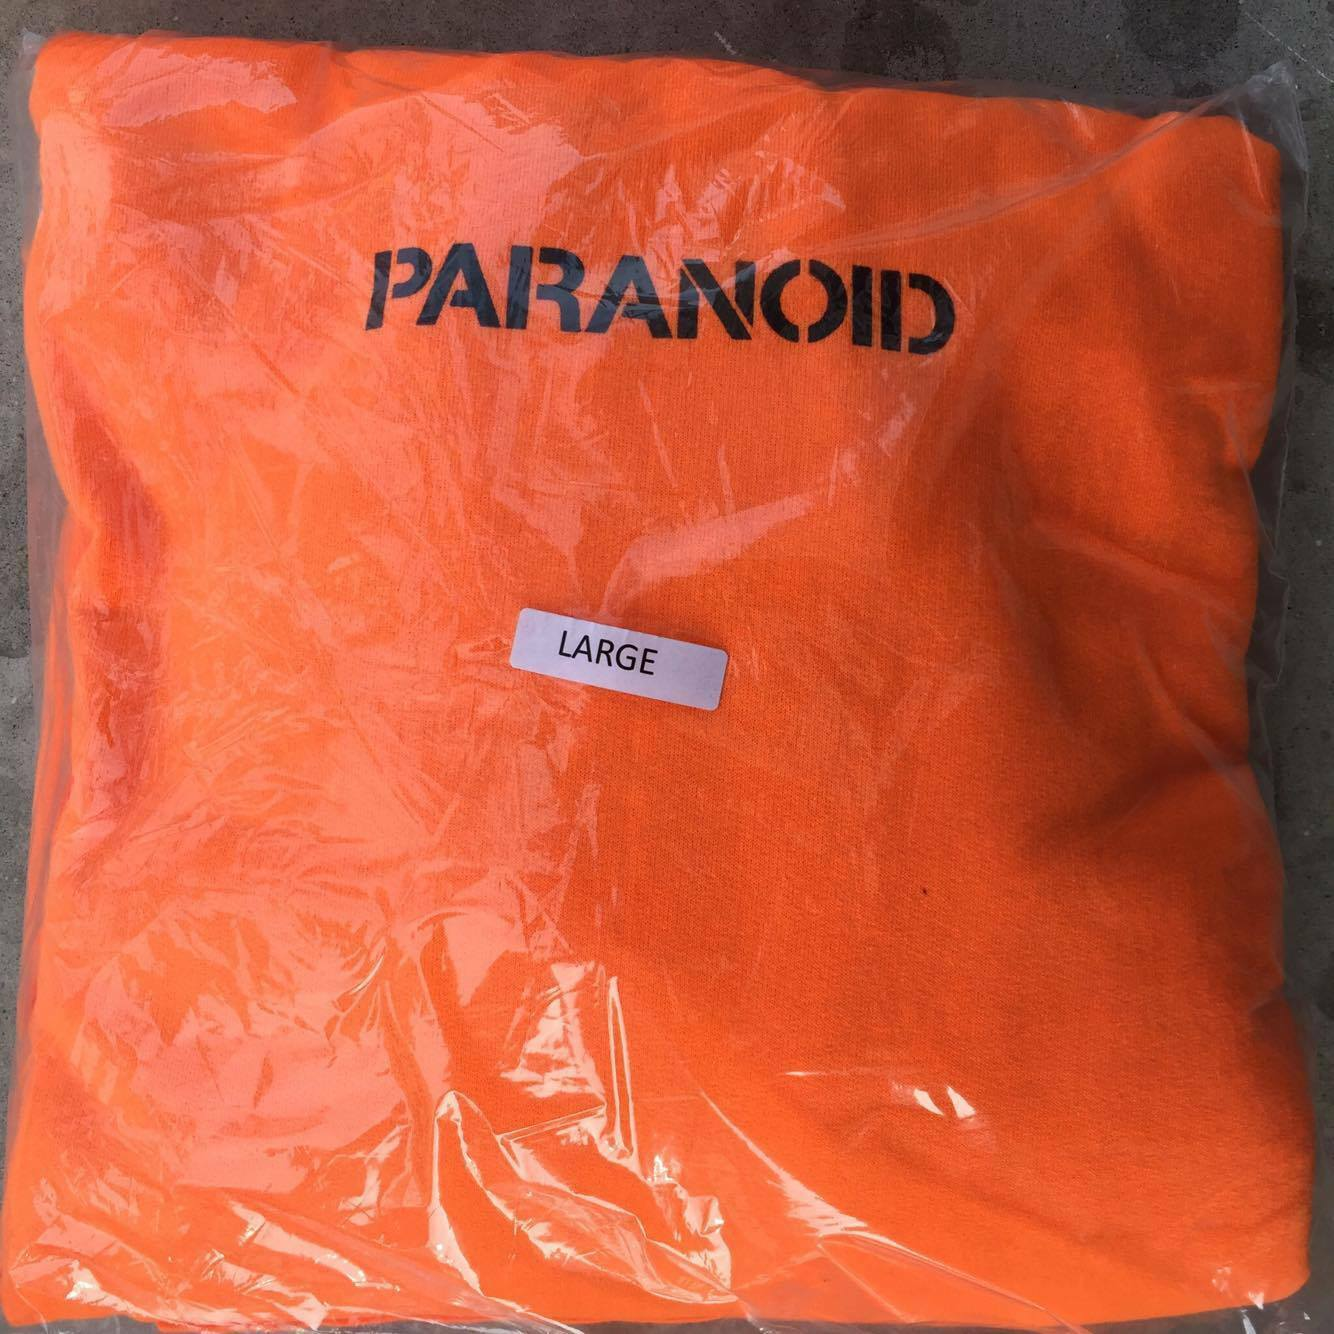 5f1f6086c839 100% Authentic Antisocial Social Club Paranoid Undefeated x ASSC Orange  Hoodie